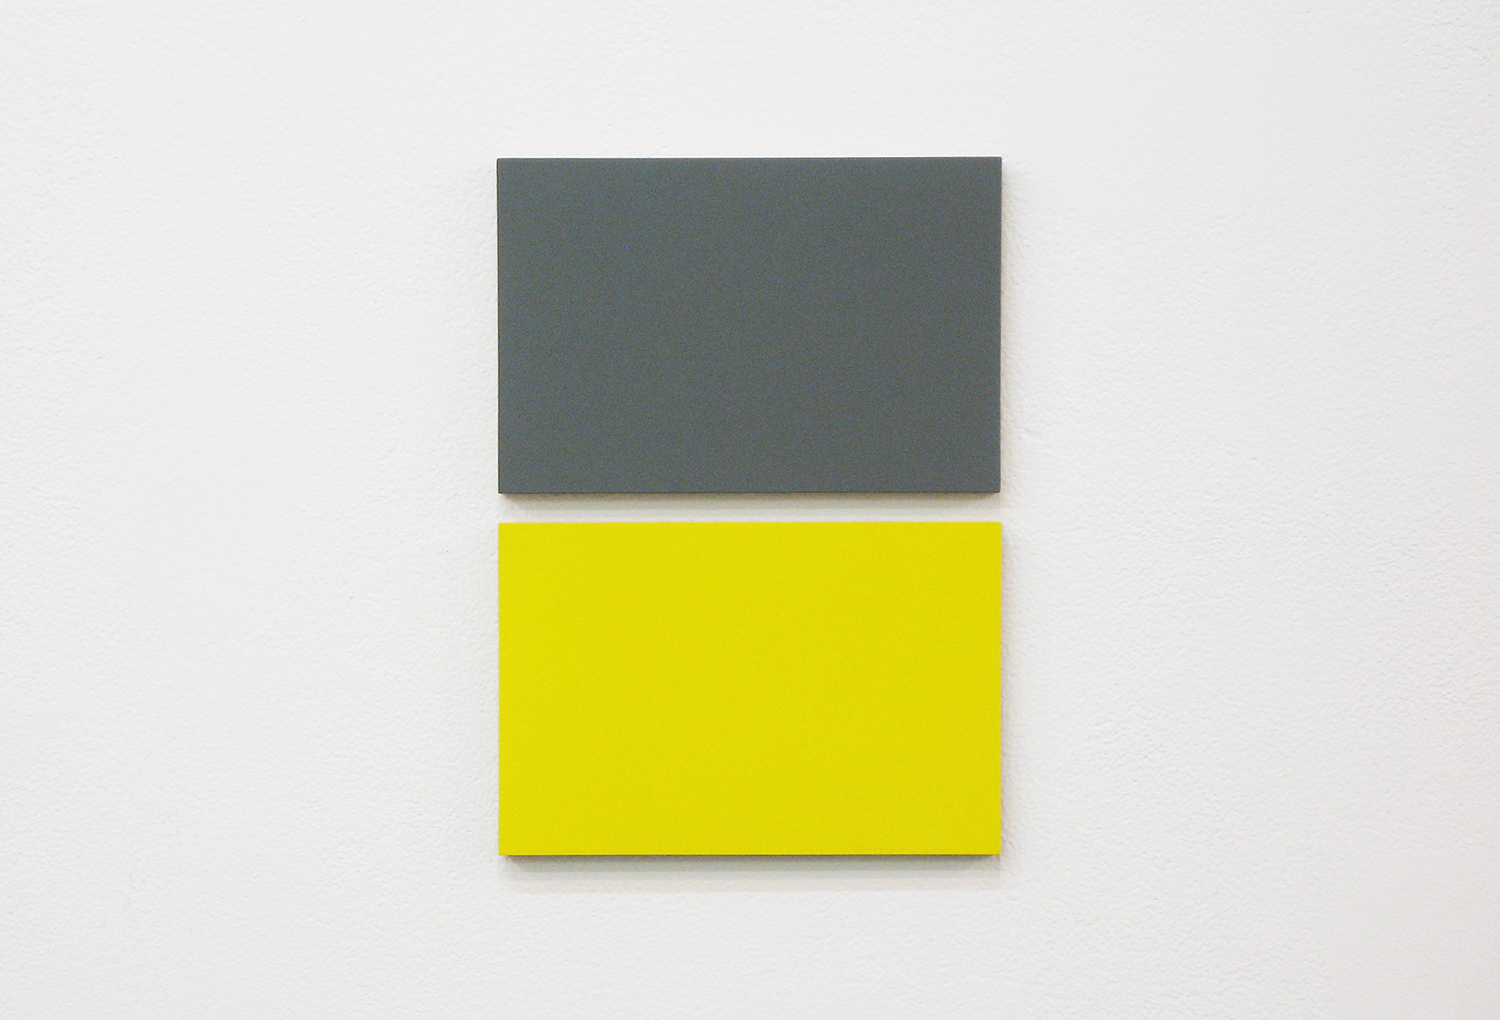 2col-09(gray & yellow)casein, pigment on canvas & aluminum (2 parts, 10 x 15 cm each)